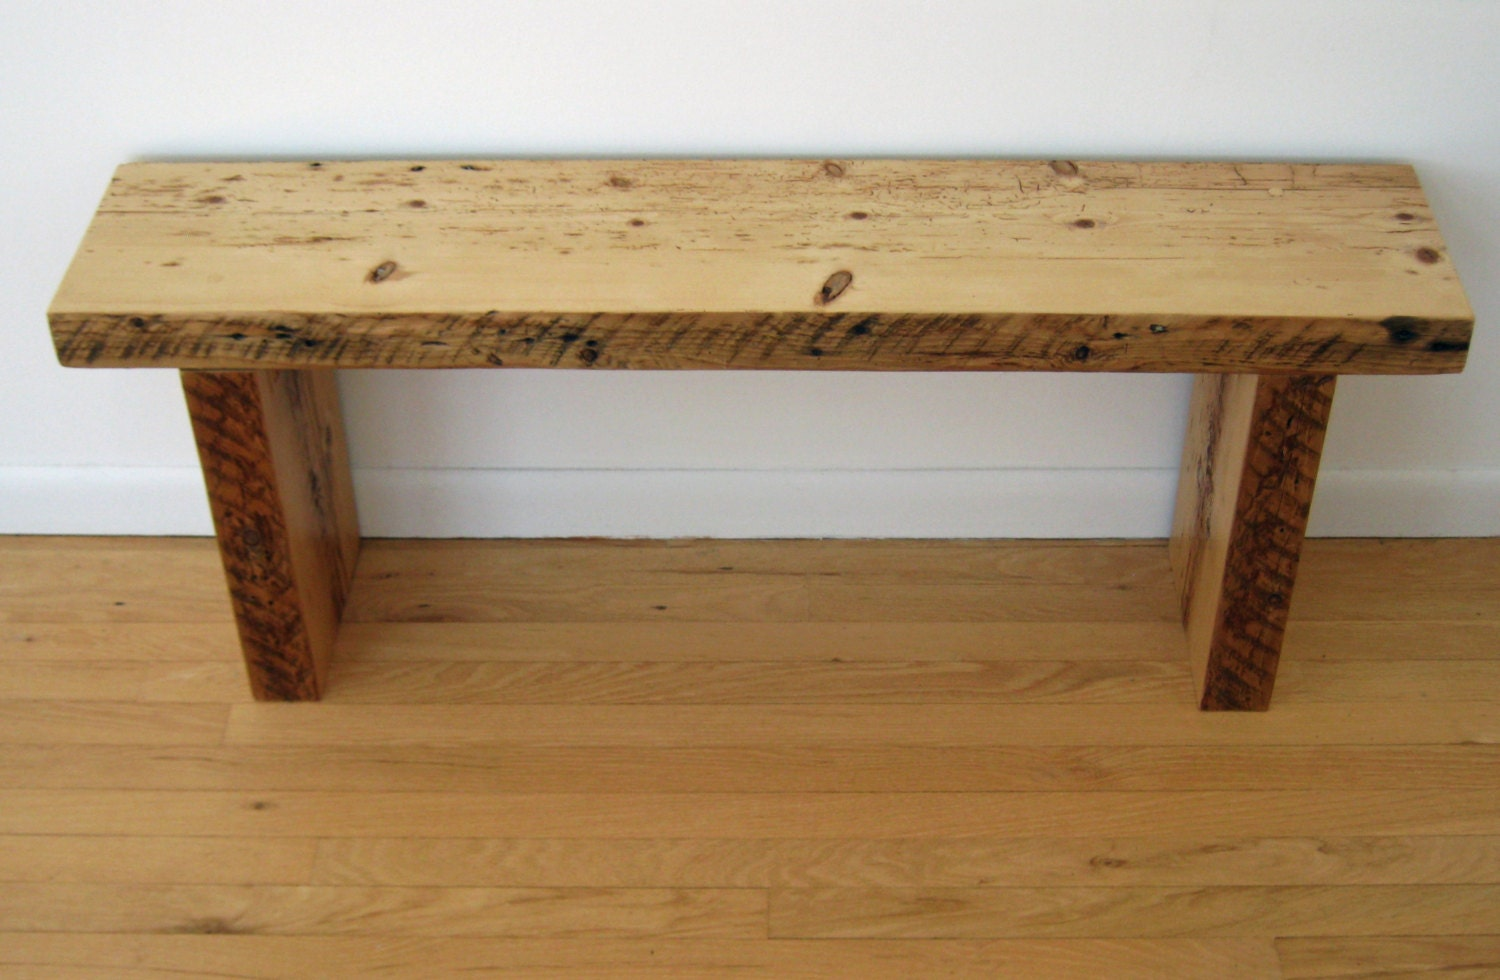 Reclaimed Wood Bench Barn Wood Barn Beams 1800s